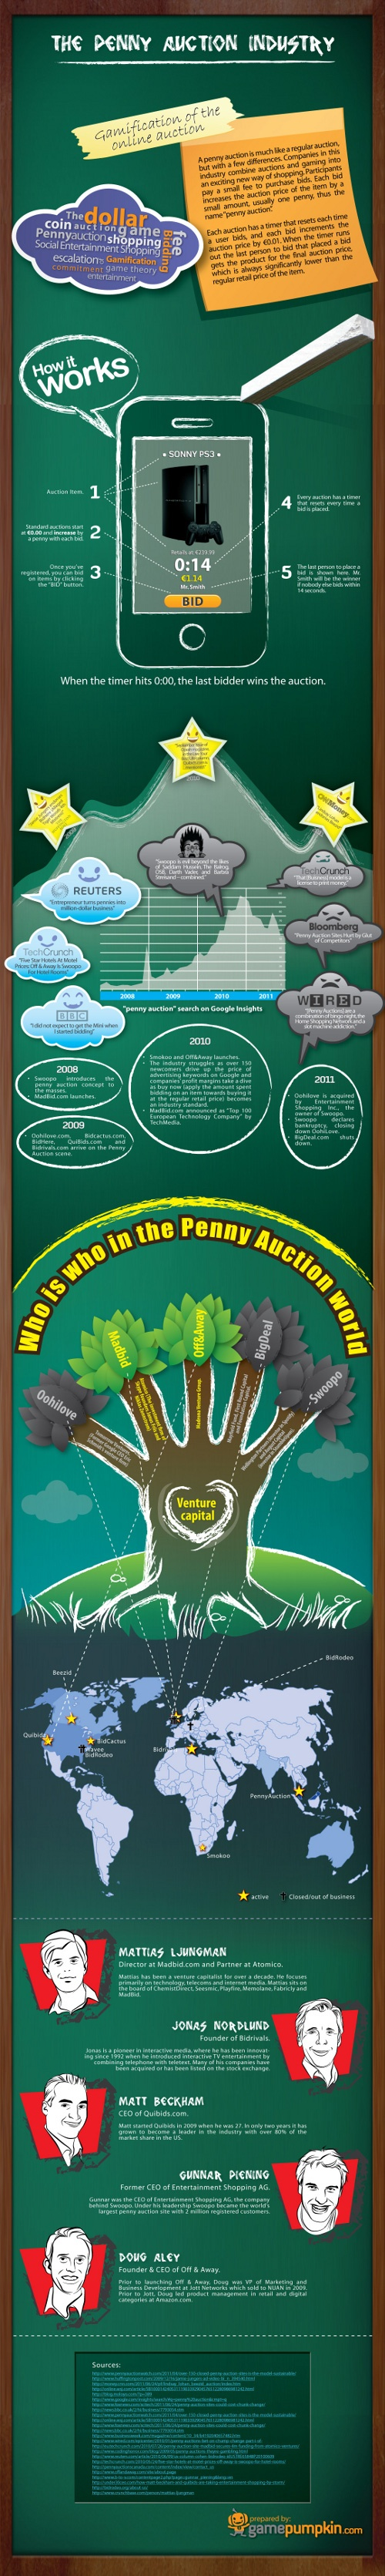 Wonderful Penny Auction Industry Infographic created by penny auction site www.gamepumpkin.com. Learn about penny auctions http://pennyauctionwatch.com